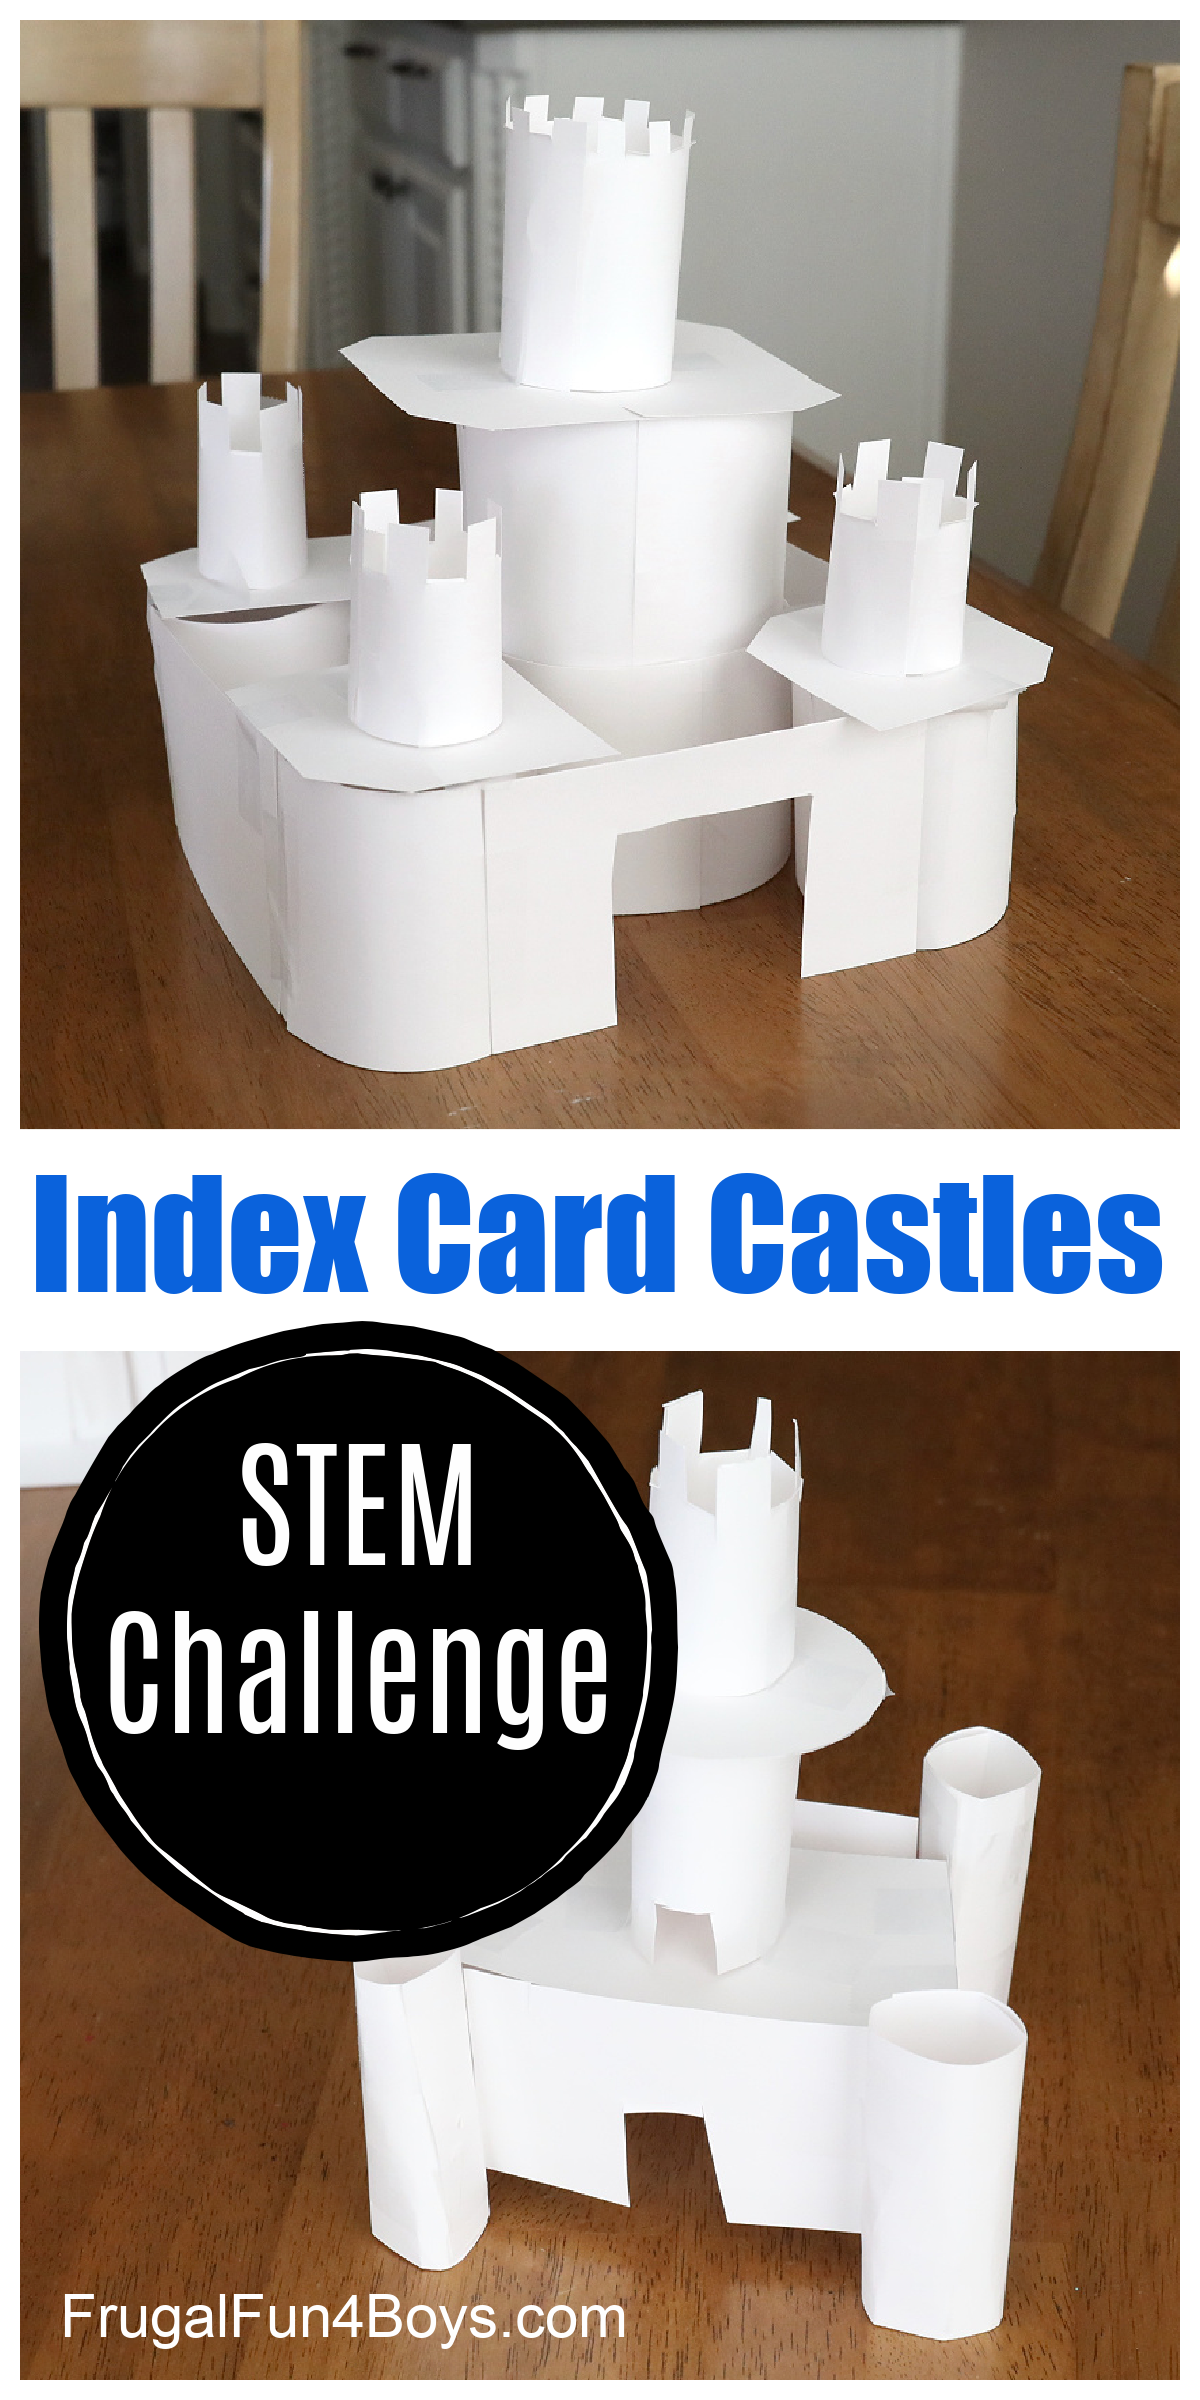 Index Card Castles! STEM challenge